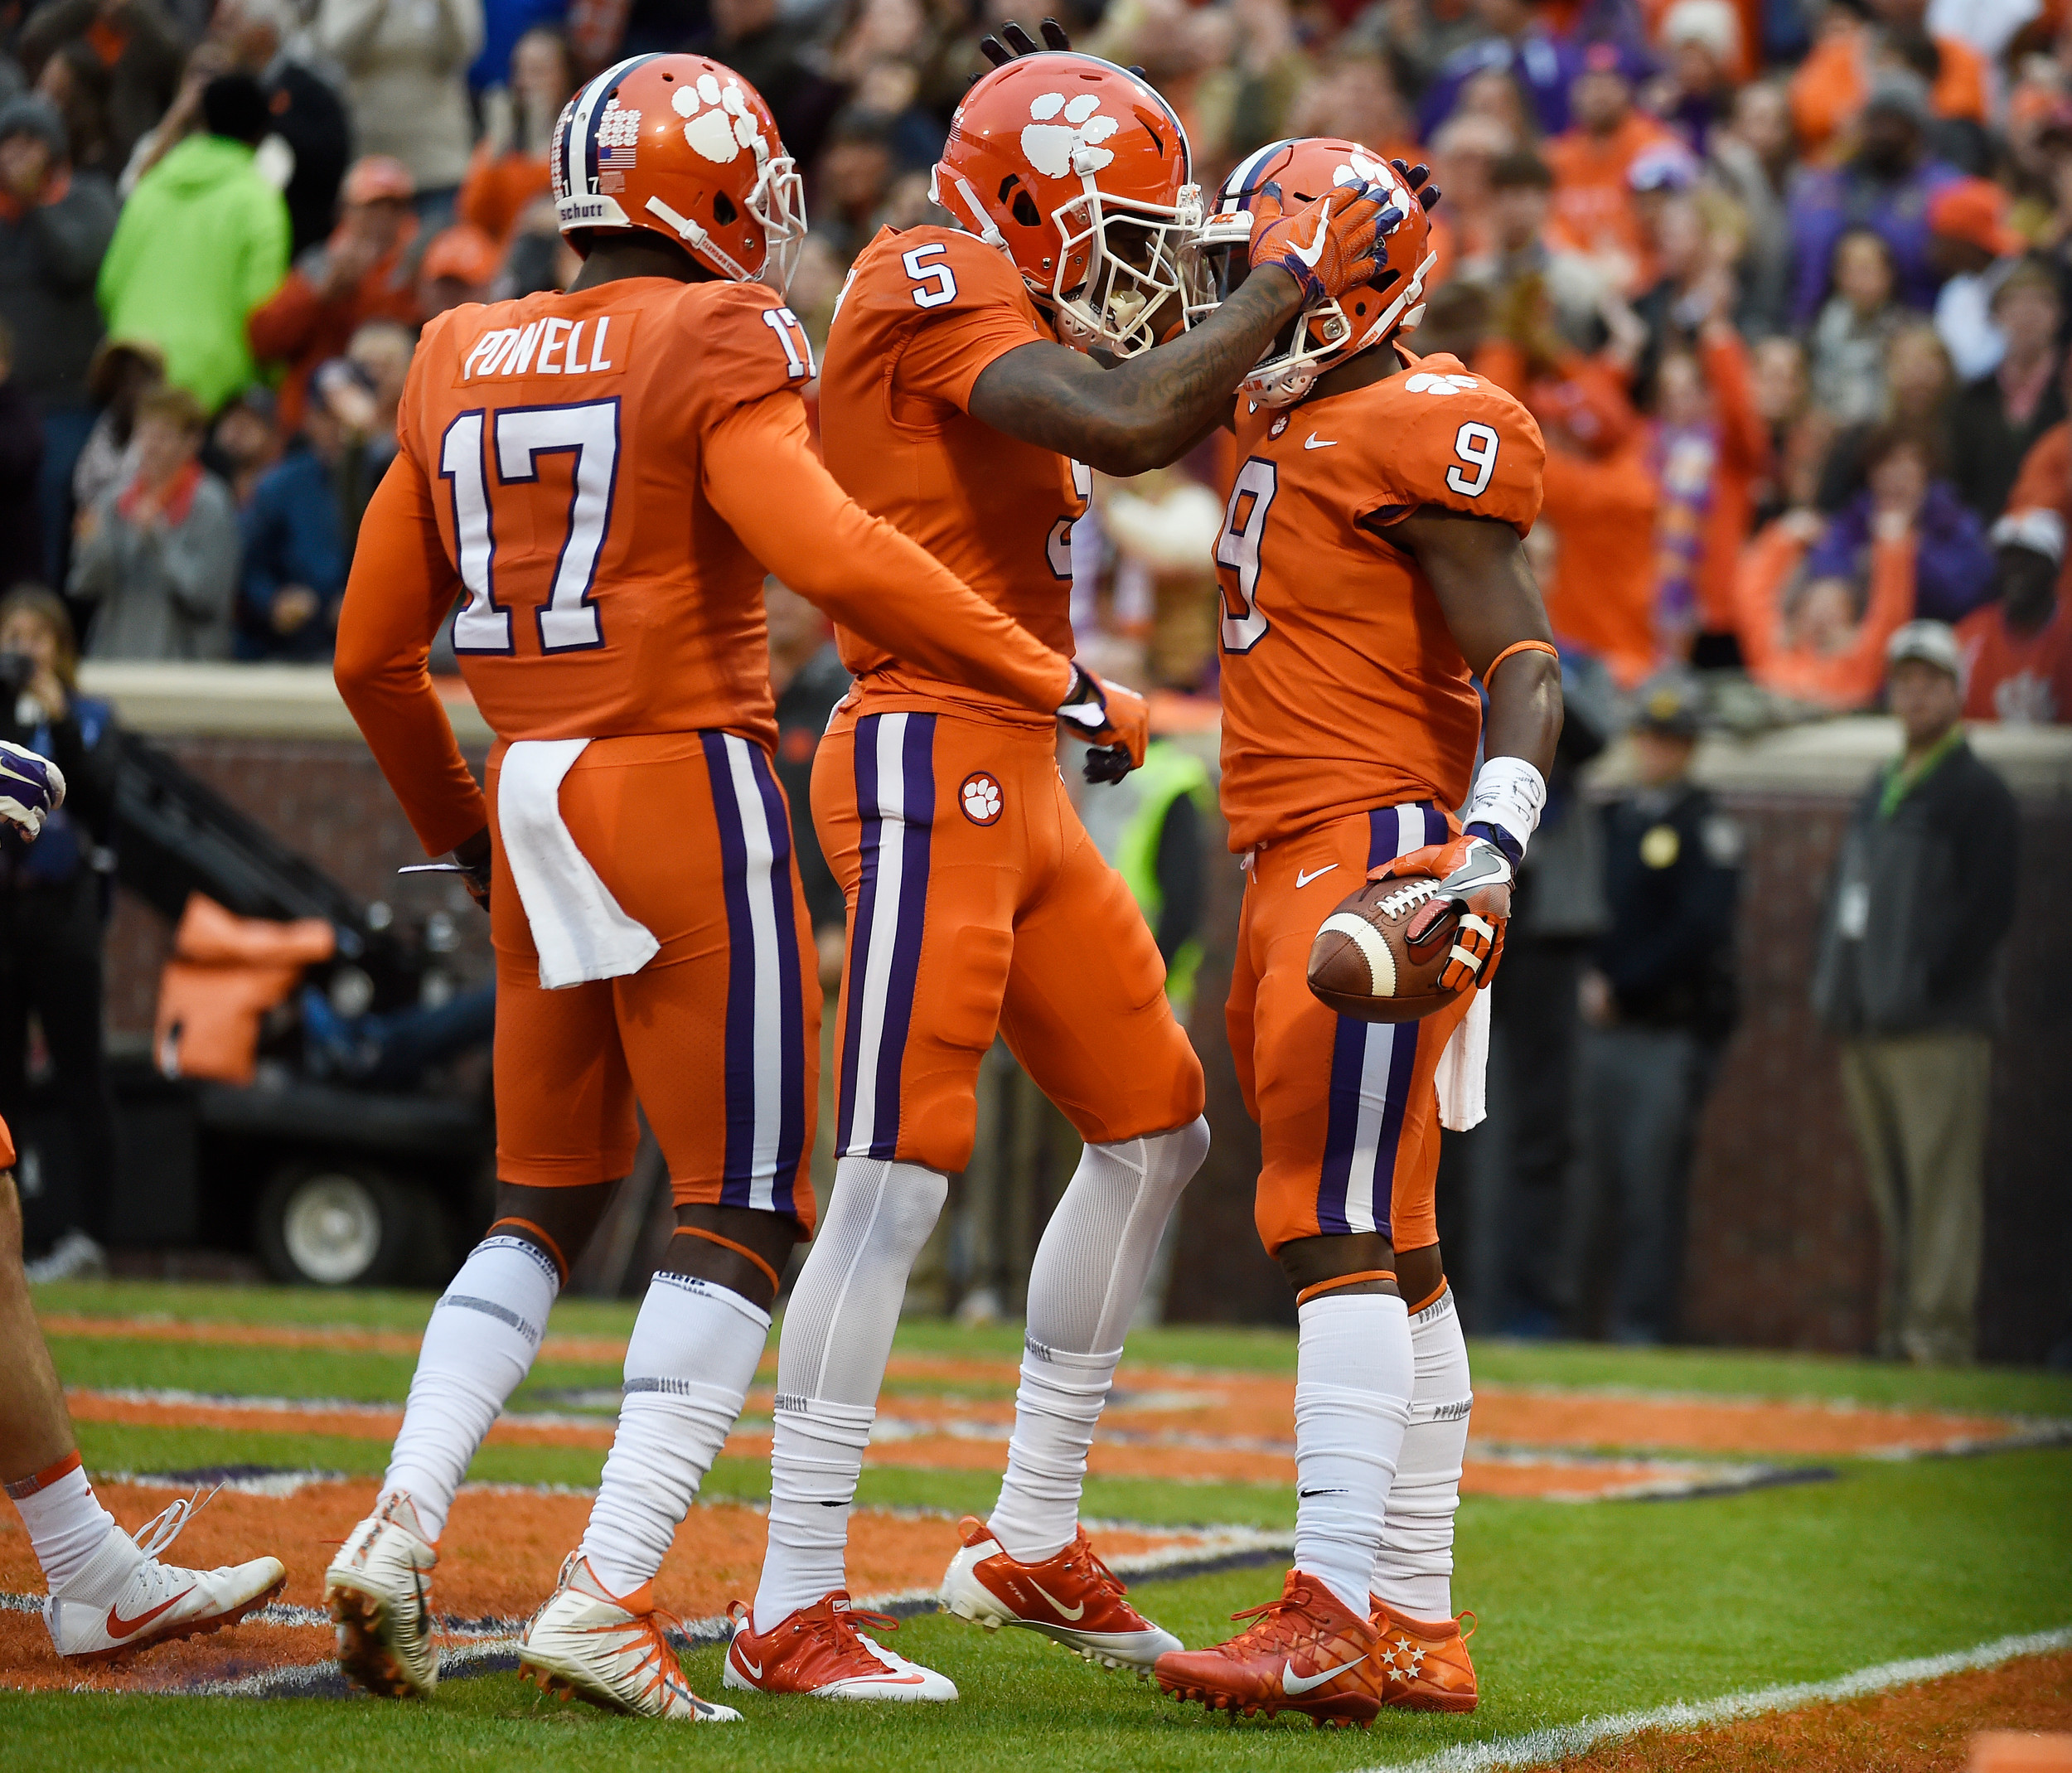 THE ASSOCIATED PRESSClemson running back Travis Etienne (9) celebrates his touchdown against Florida State with teammates Tee Higgins (5) and Cornell Powell (17) during the Tigers' 31-14 victory on Saturday in Clemson. The Tigers are still in the hunt for a berth in the College Football Playoff despite the loss of several key performers off of last season's national championship squad.